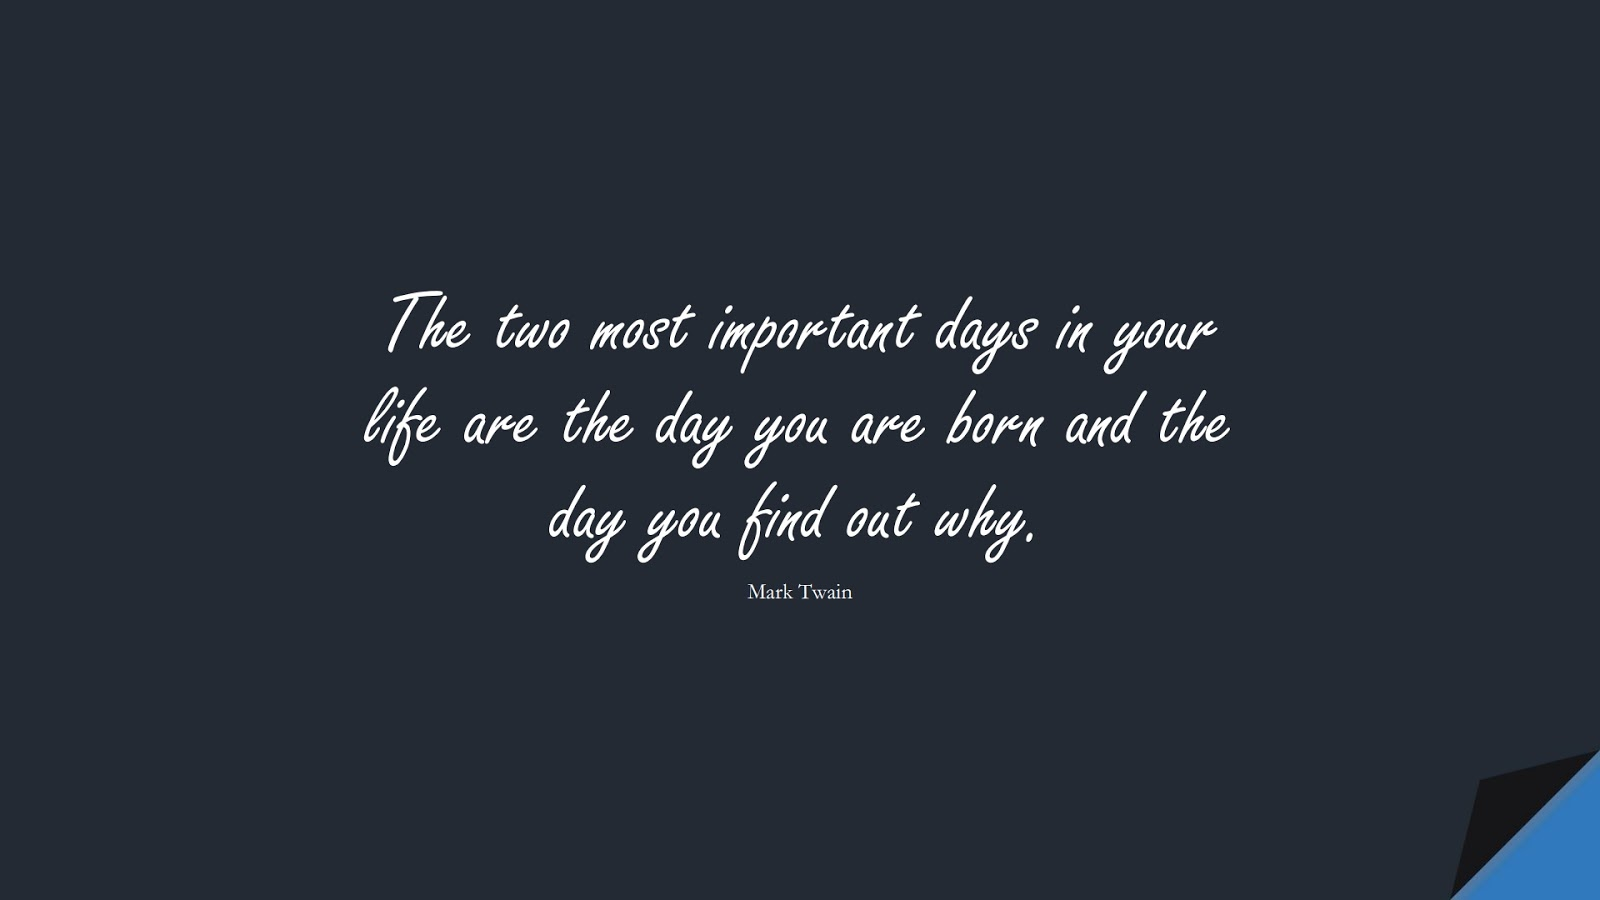 The two most important days in your life are the day you are born and the day you find out why. (Mark Twain);  #ChangeQuotes